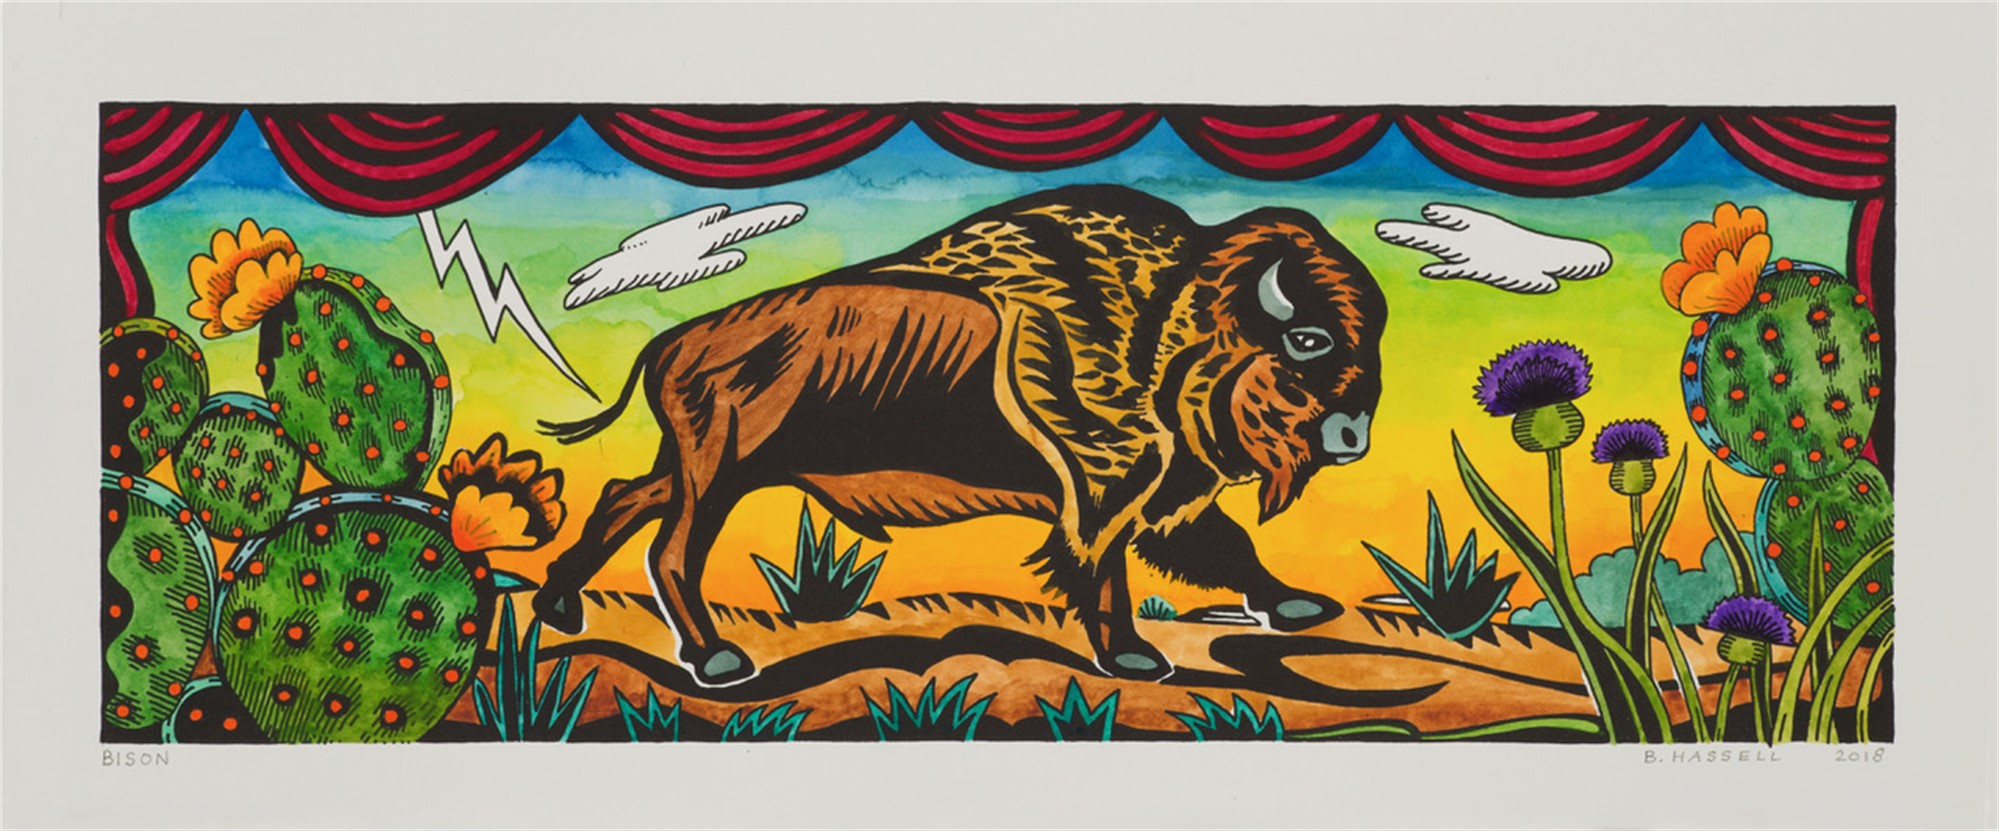 Bison by Billy Hassell